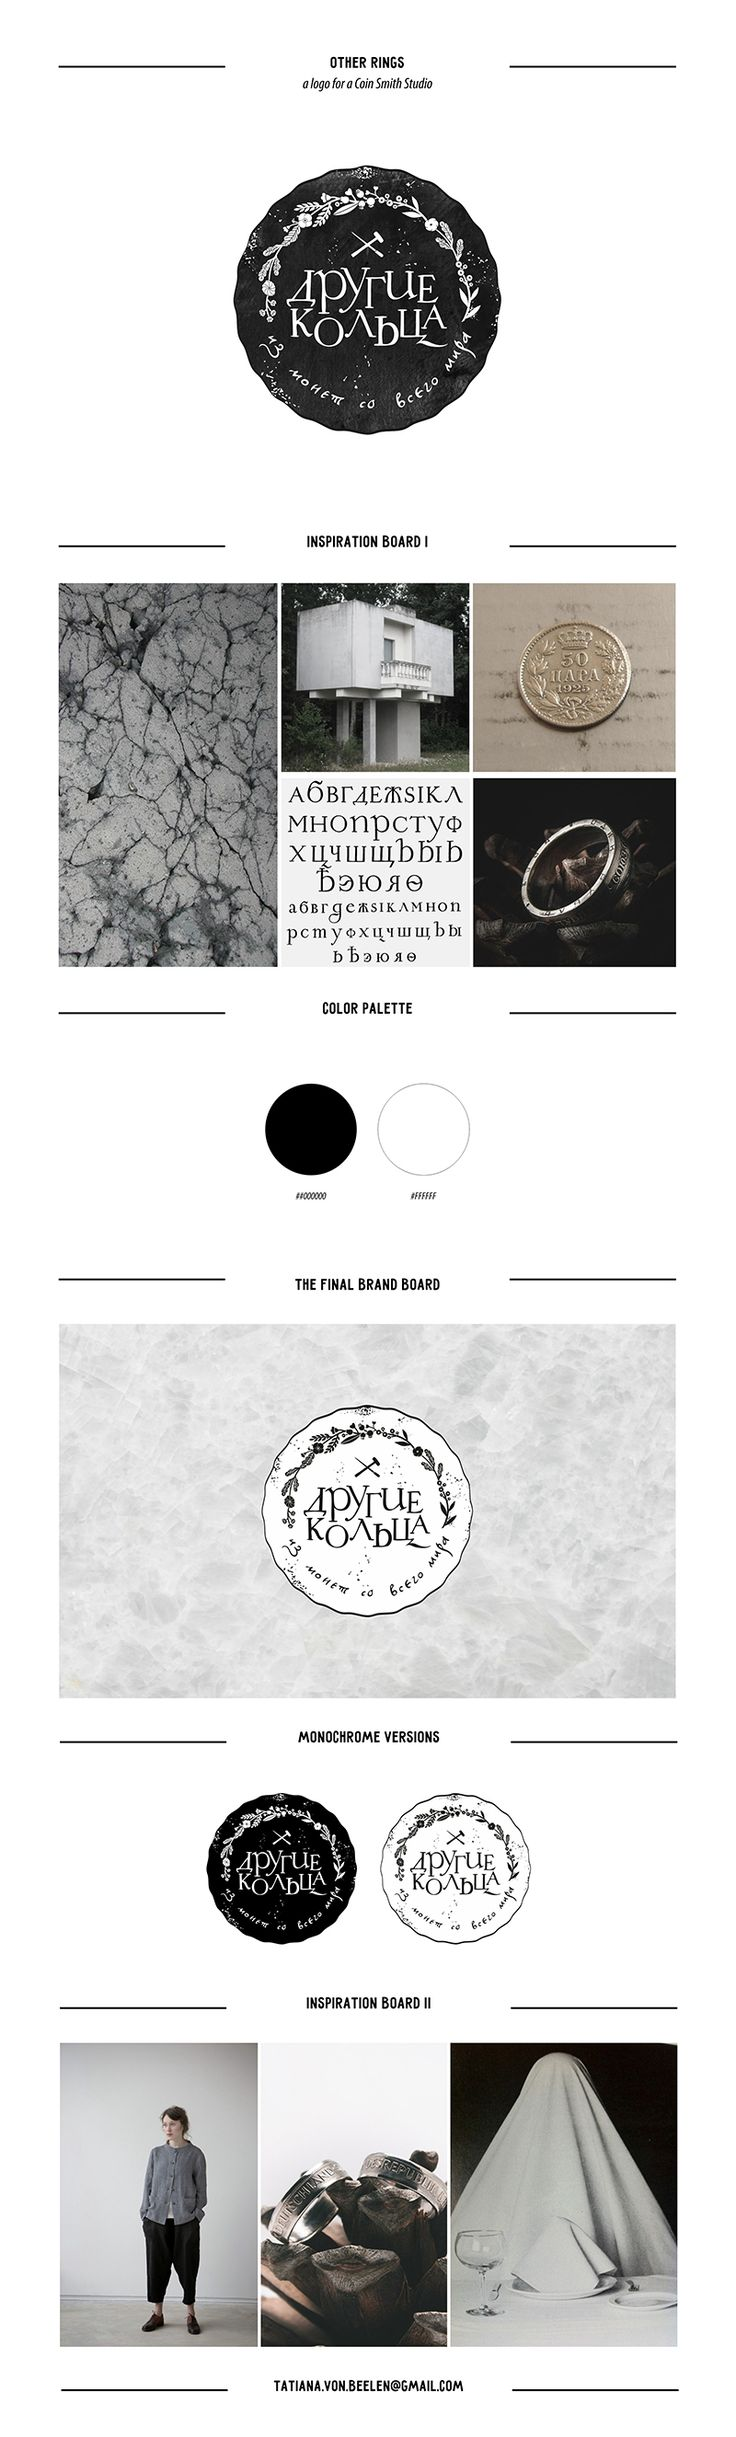 #logotype #logo #inspiration #design #board #graphic #branding #calligraphy #letteringring #jewelry #coin #studio #black&white #texture #smith Other rings logo on Behance